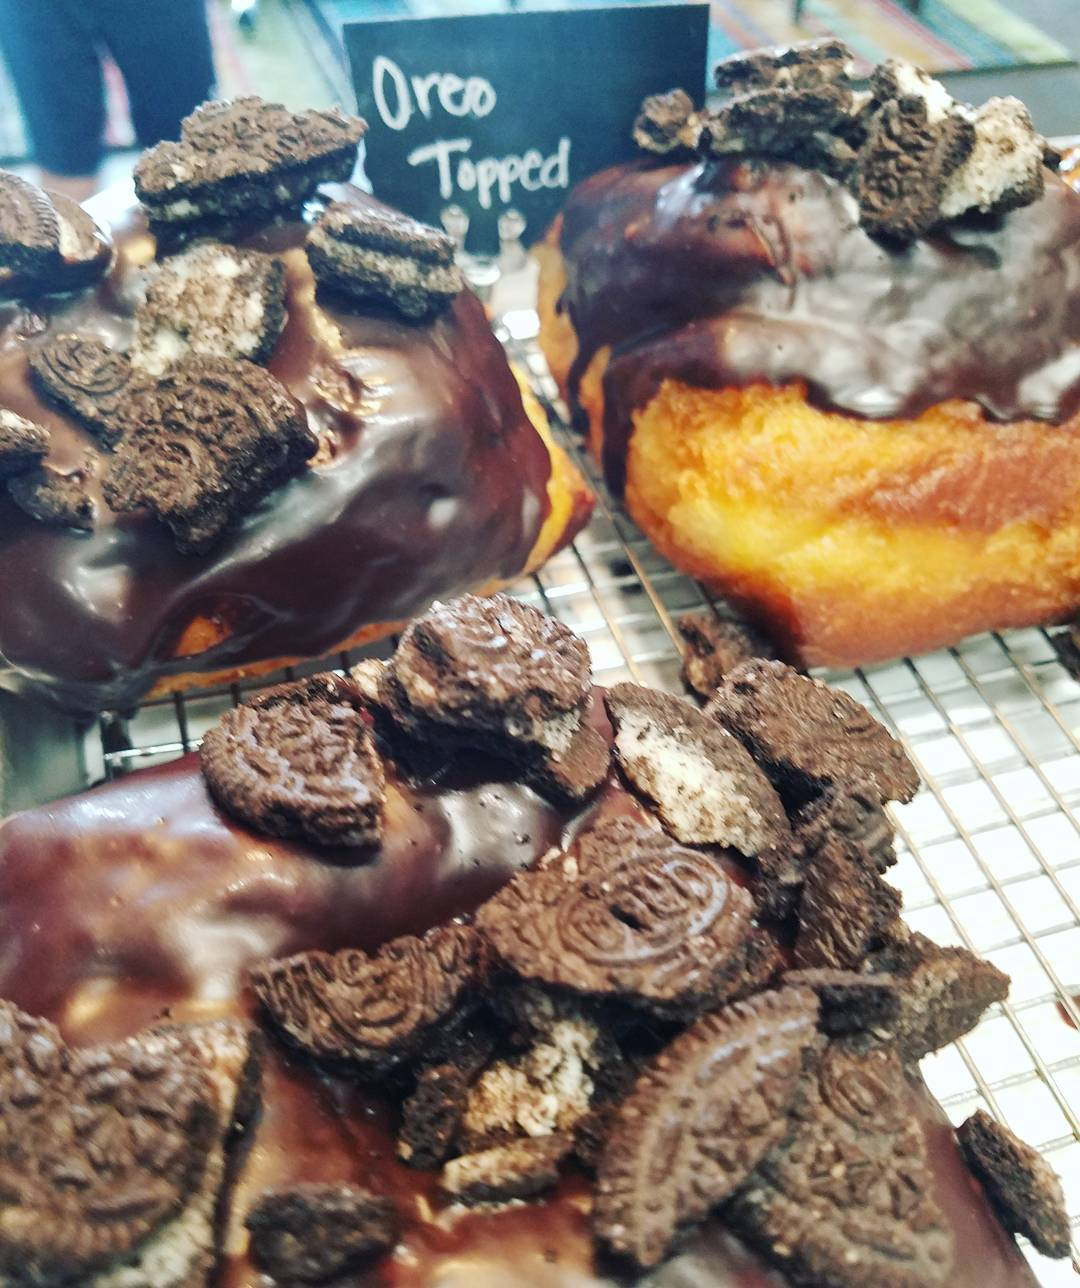 doughnut donut best five star cake oreo topped chocolate glazed sweet fried near me fresh soft